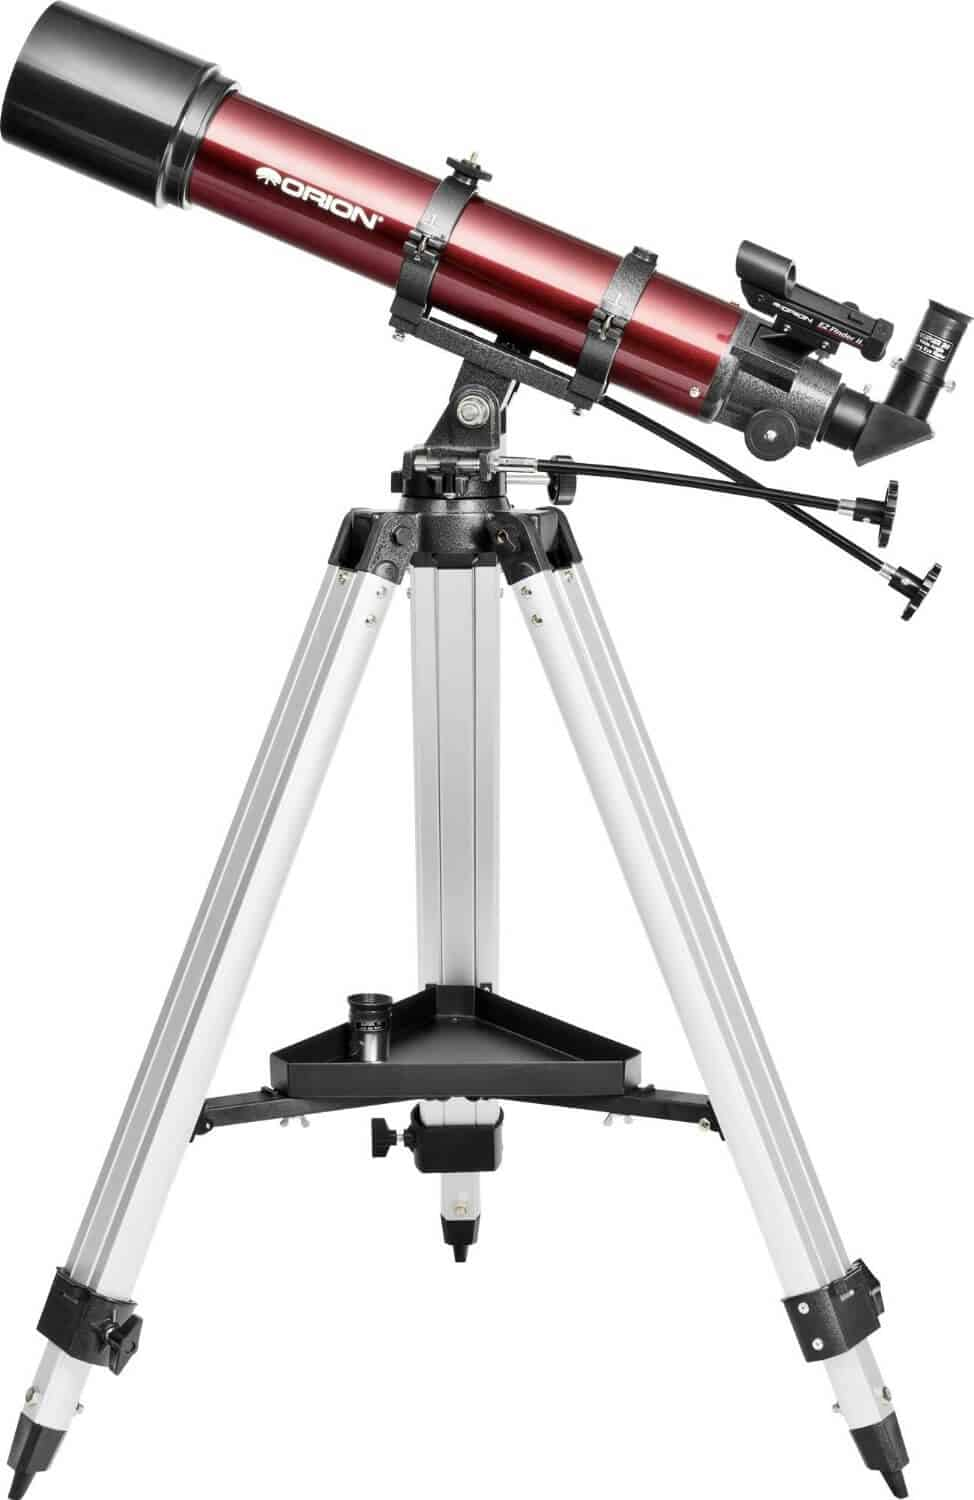 Orion StarBlast 90mm telescope for viewing planets